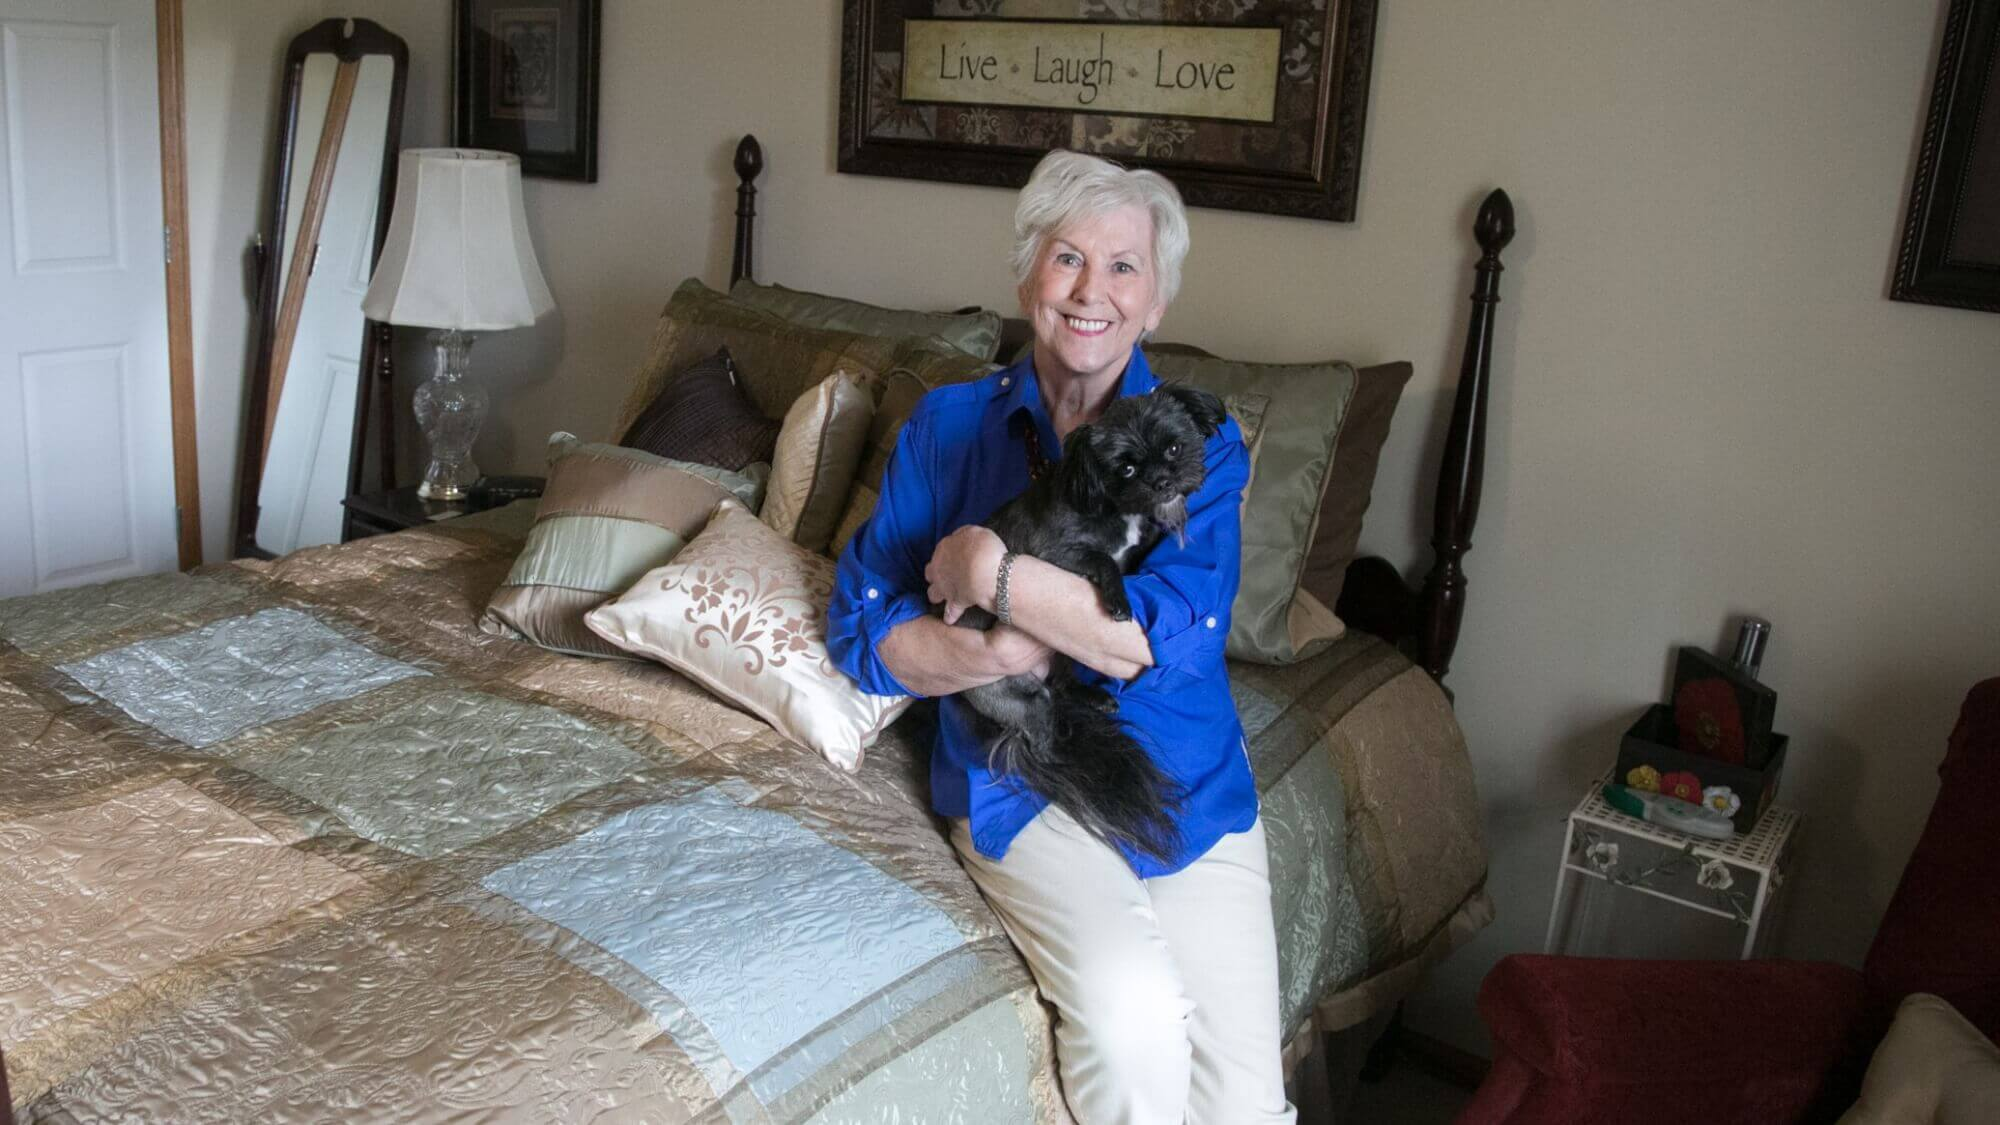 Woman resident smiling while she sits on her bed holding her dog sitting on her bed holdin